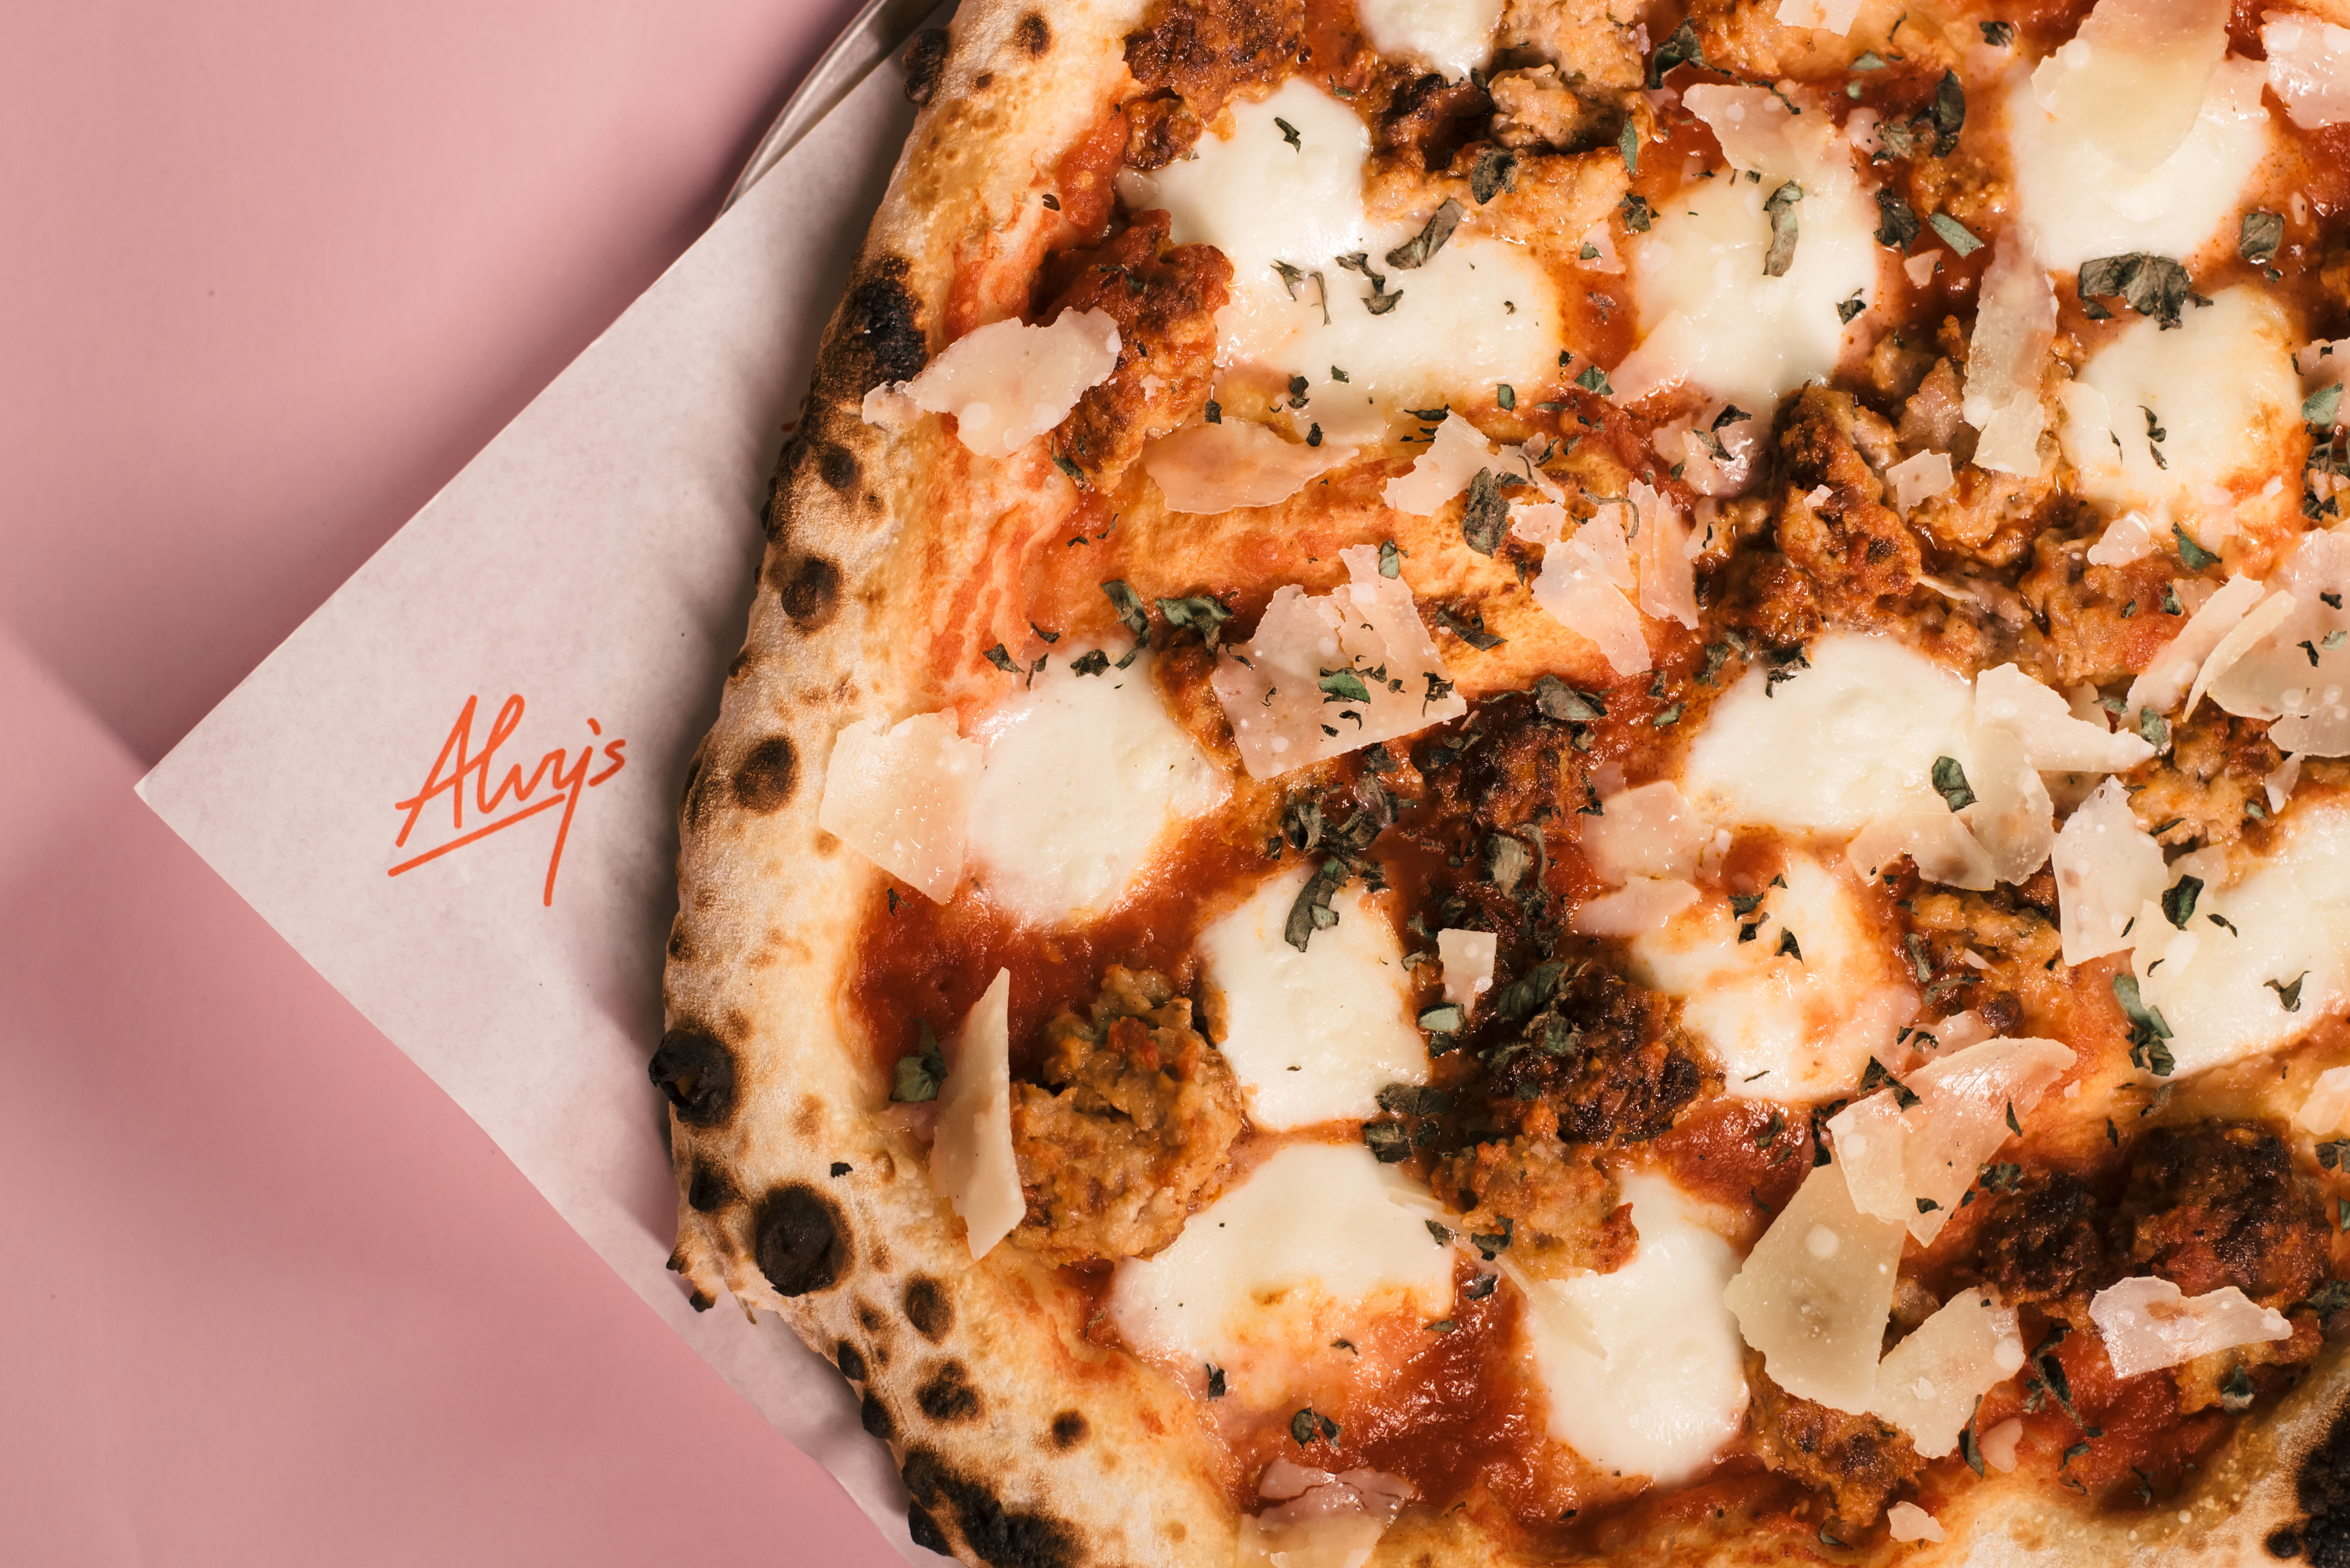 Alvy's +meatball pizza